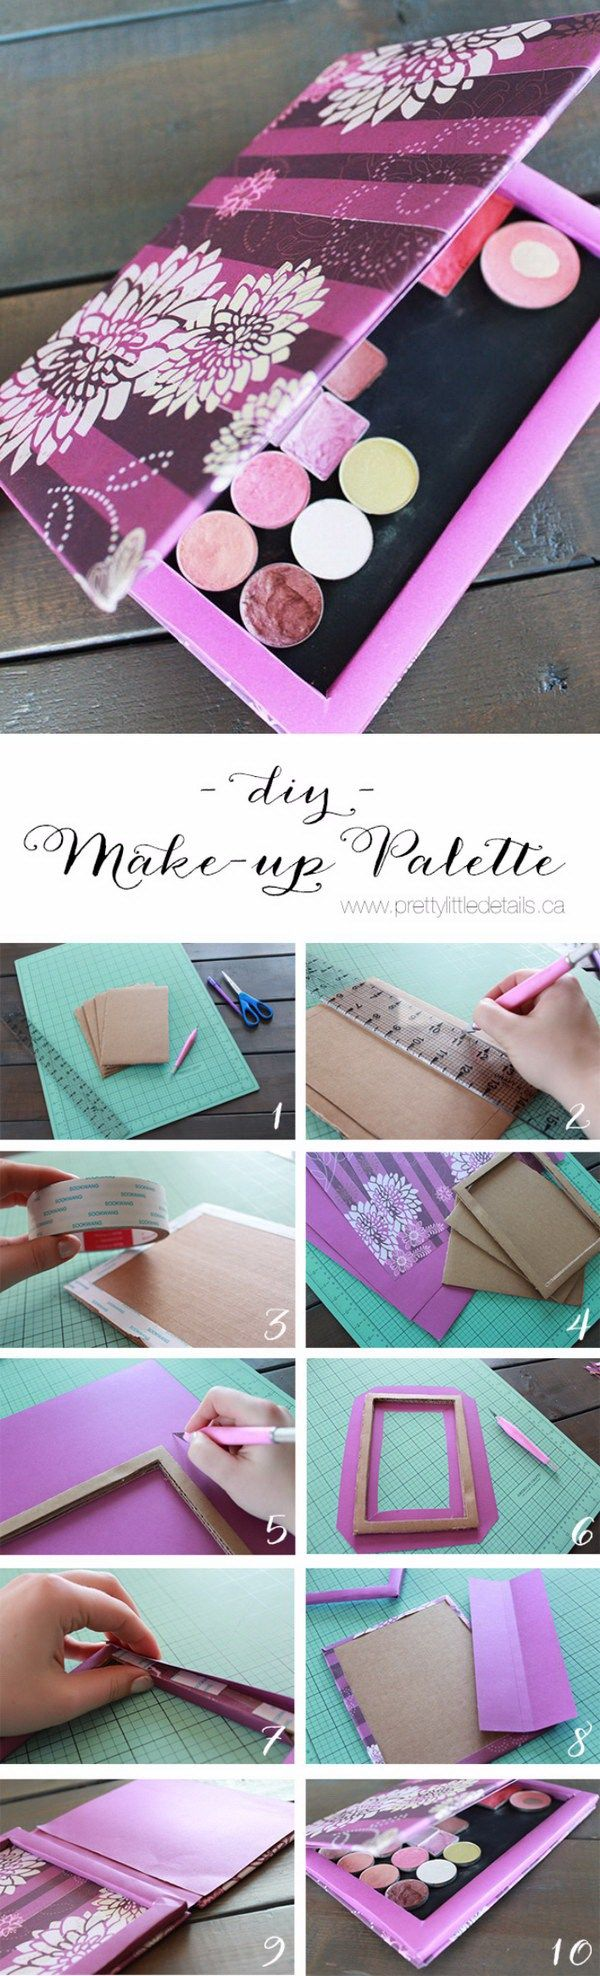 DIY Makeup Palette. This makeup palette is perfect for storing the powder products for girls. You can make it with cardboard, crafts paper and a magnetic sheet by yourself.